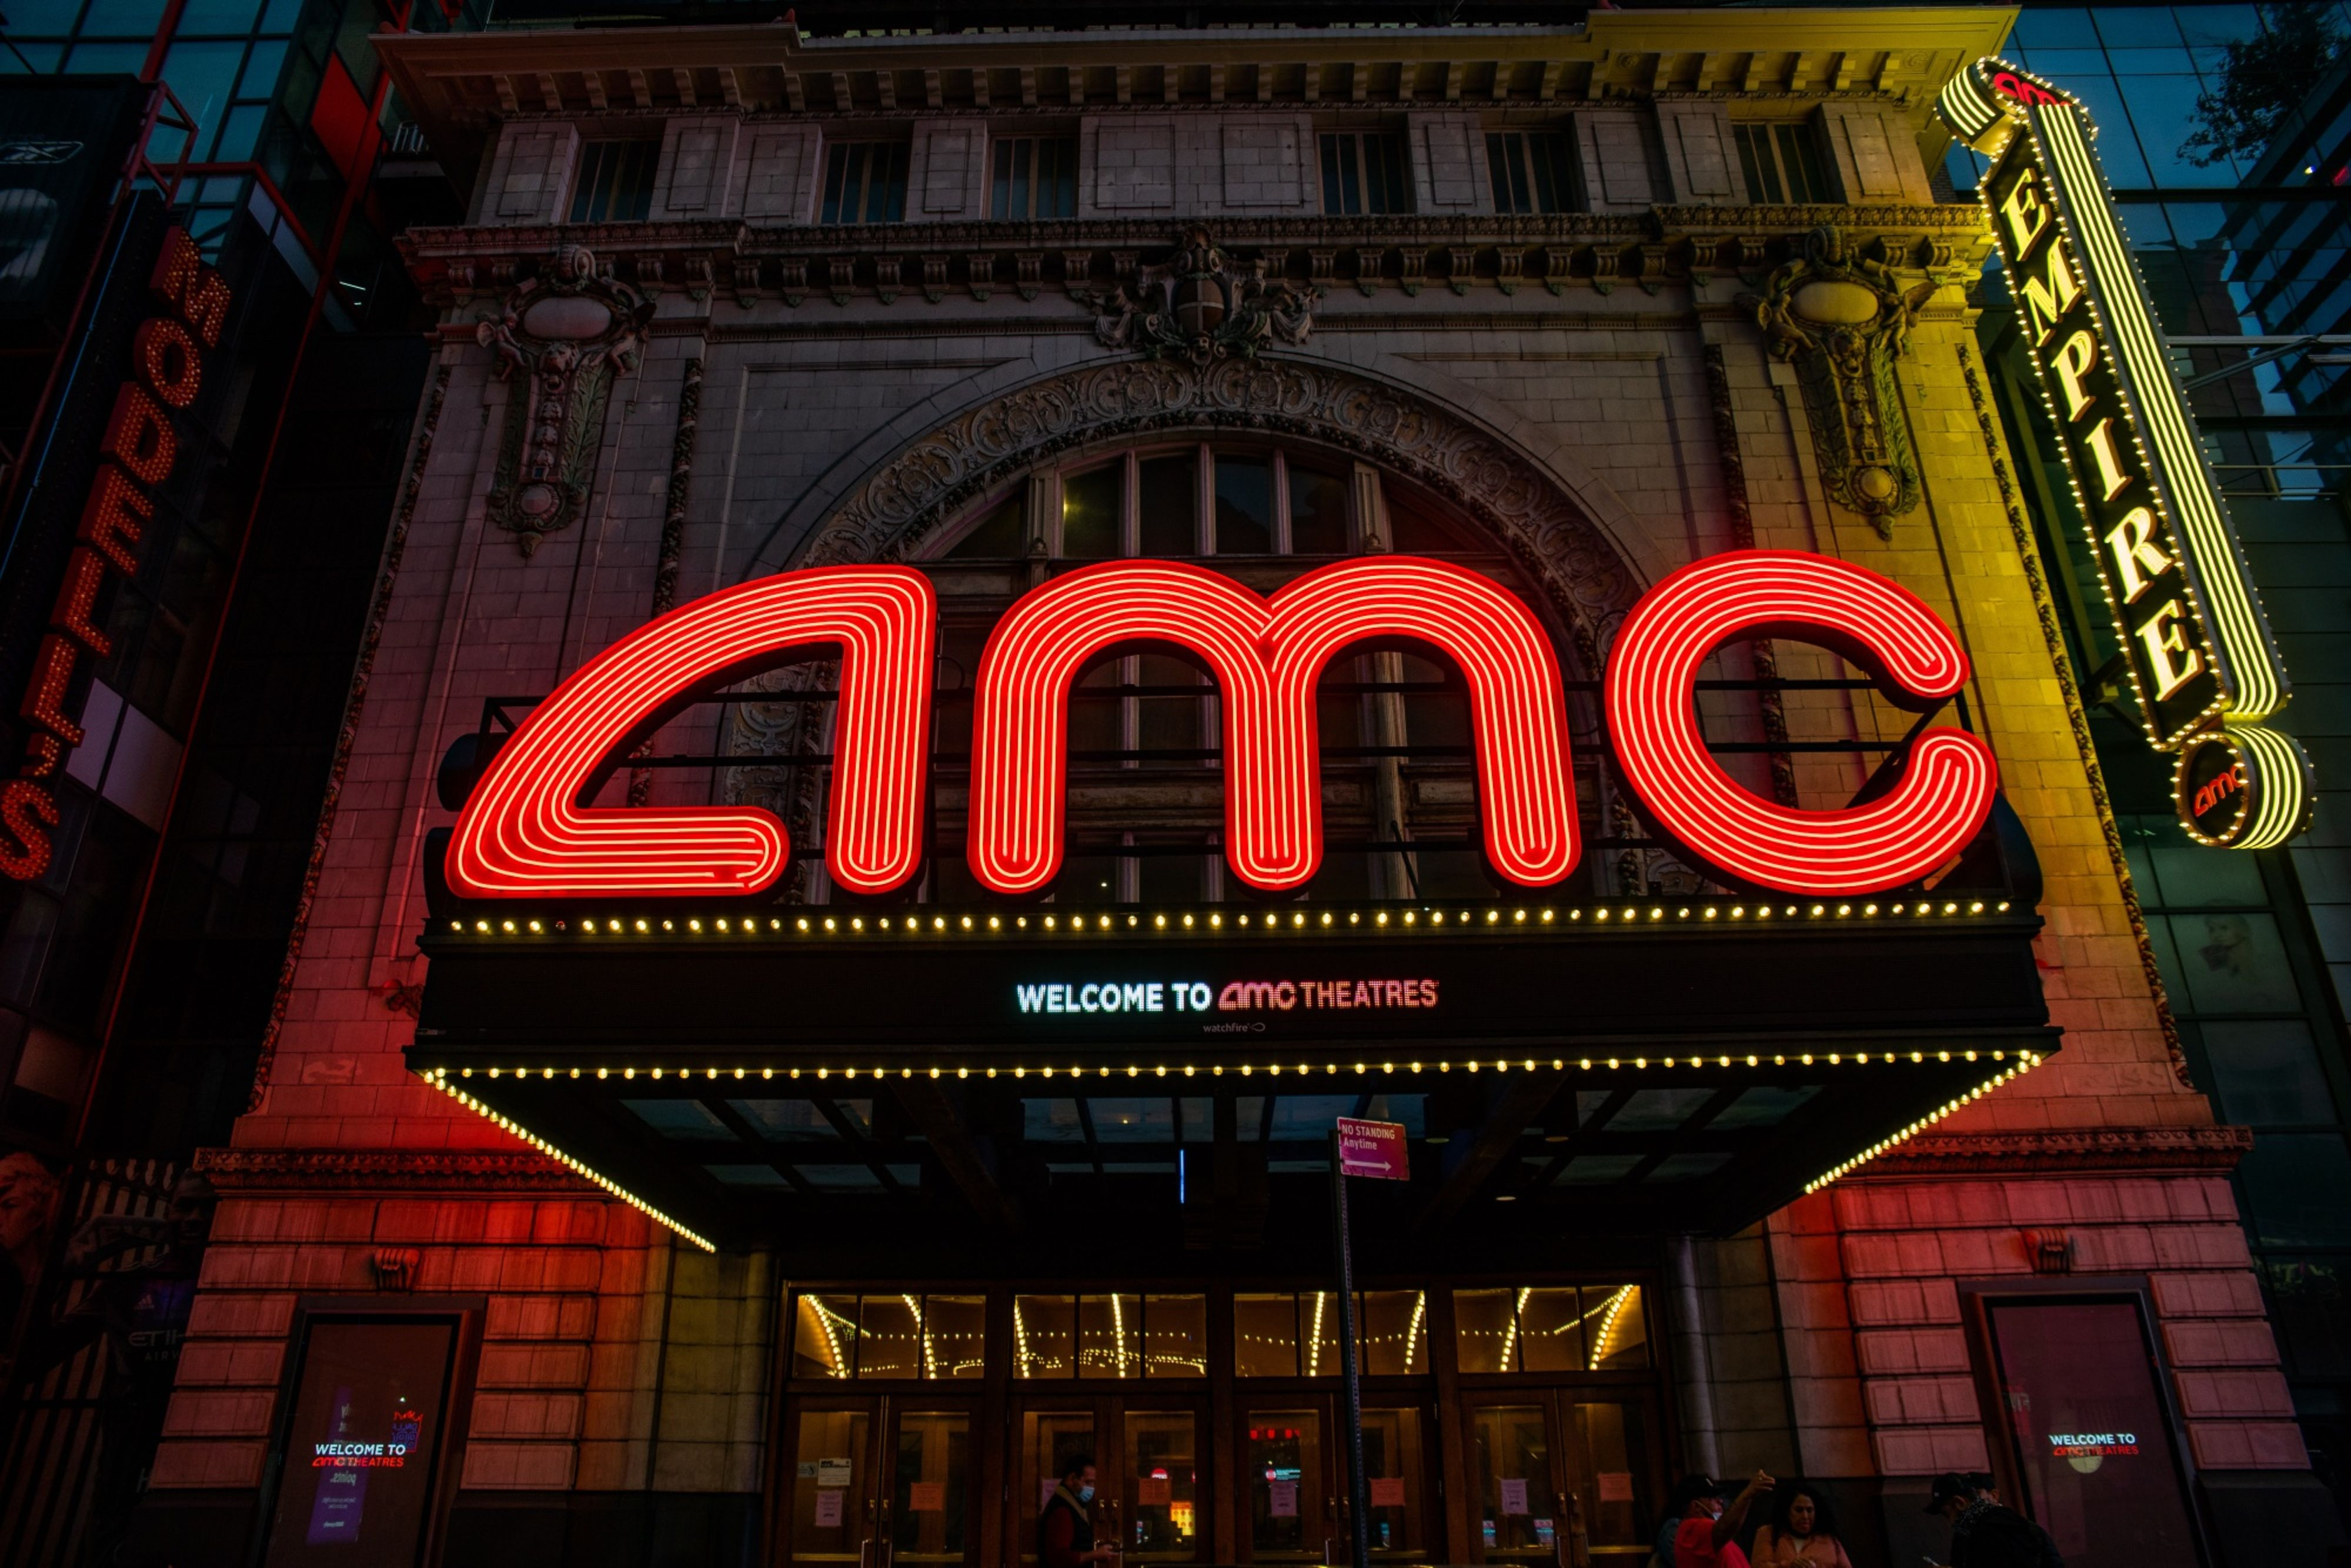 AMC drama is exposing risks in US$11 trillion world of indexing